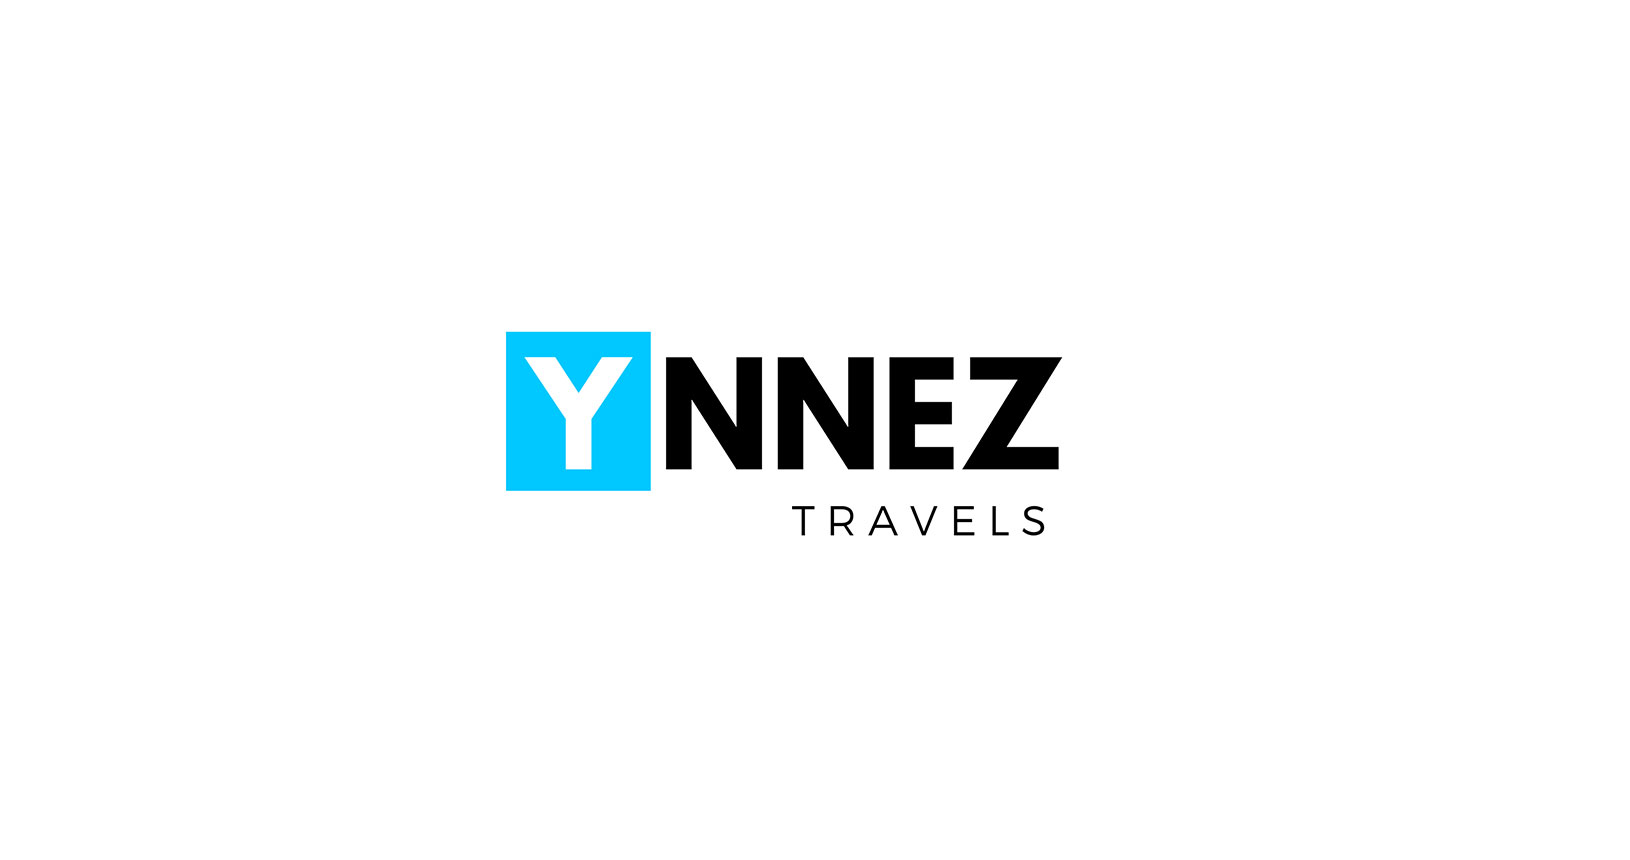 ynnez-travels